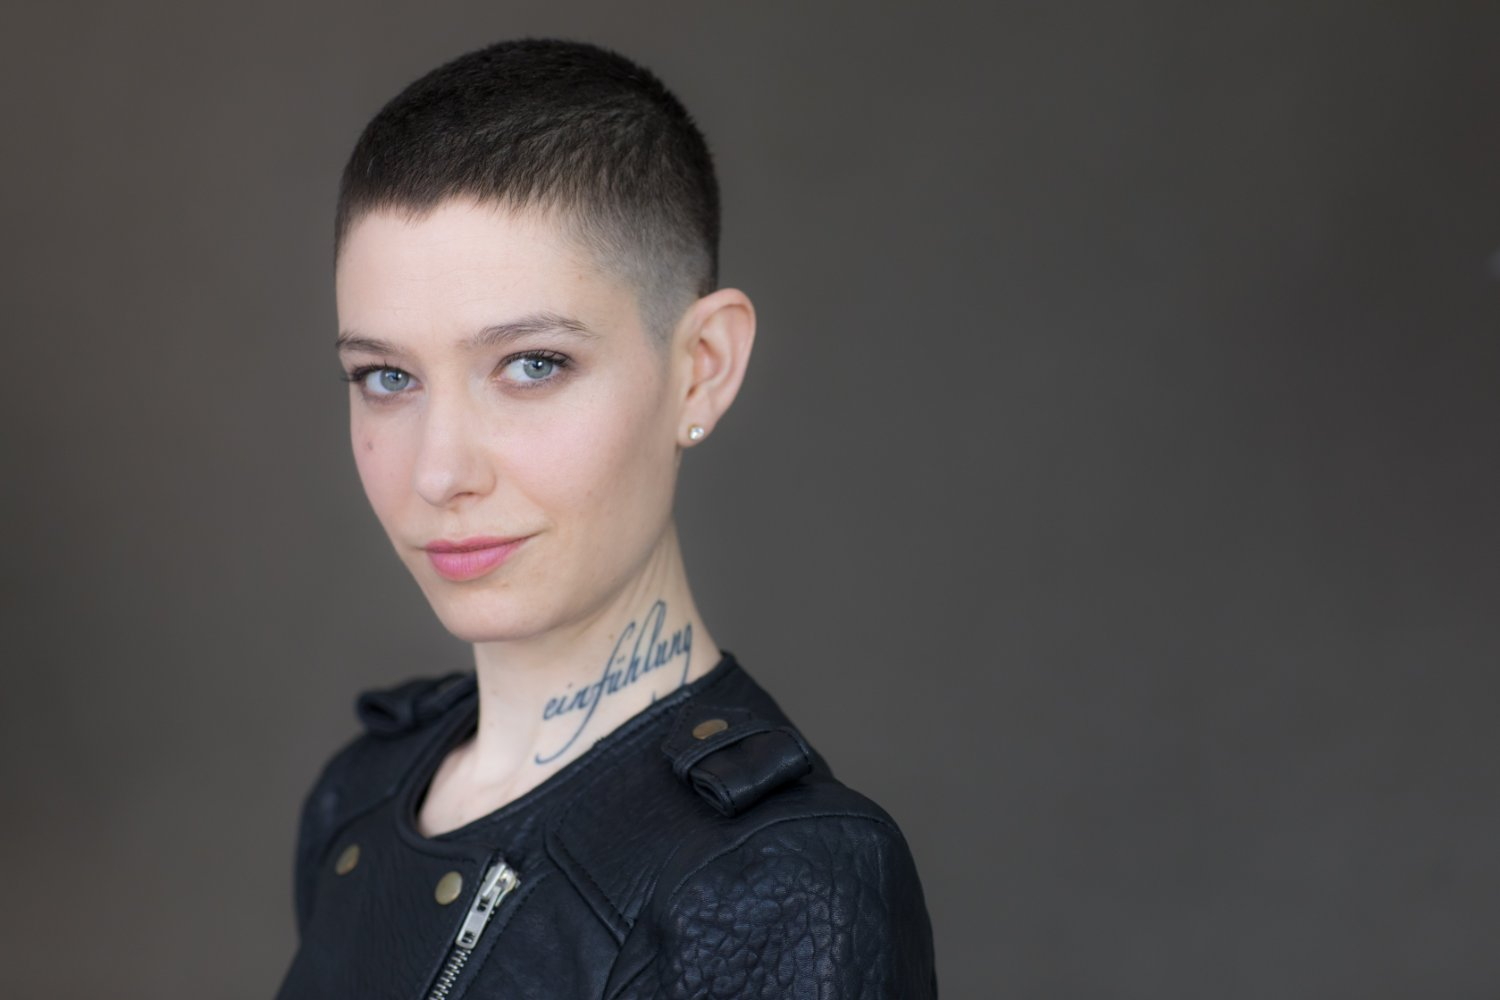 Asia Kate Dillon | Orange is the New Black Wiki | FANDOM